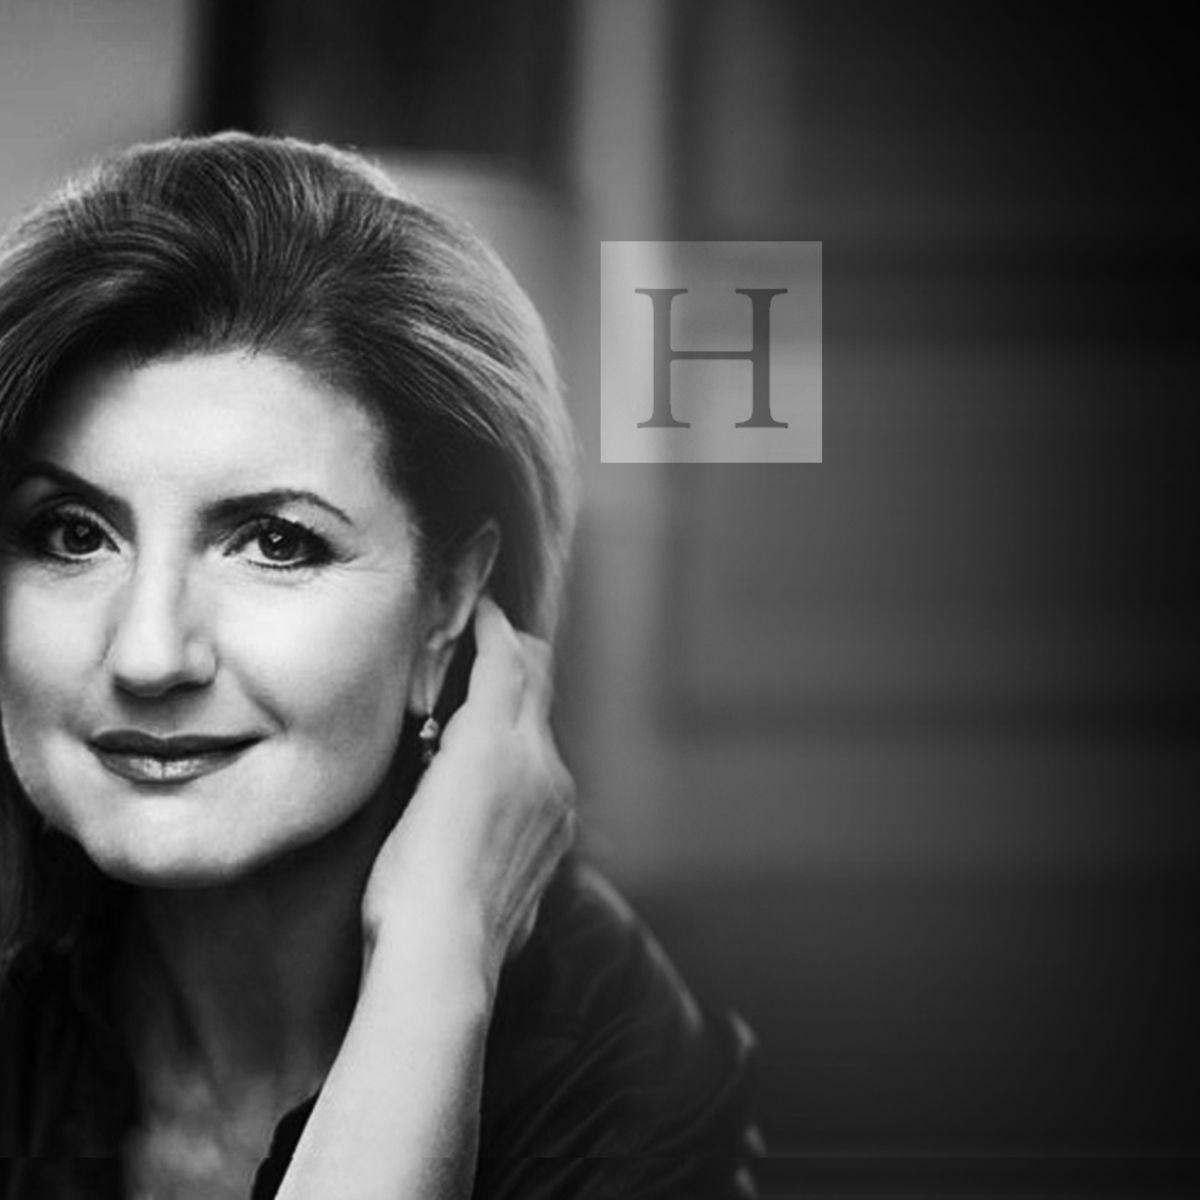 Arianna Huffington, fondatrice di The Huffington Post (noto dal 2016 come HuffPost)